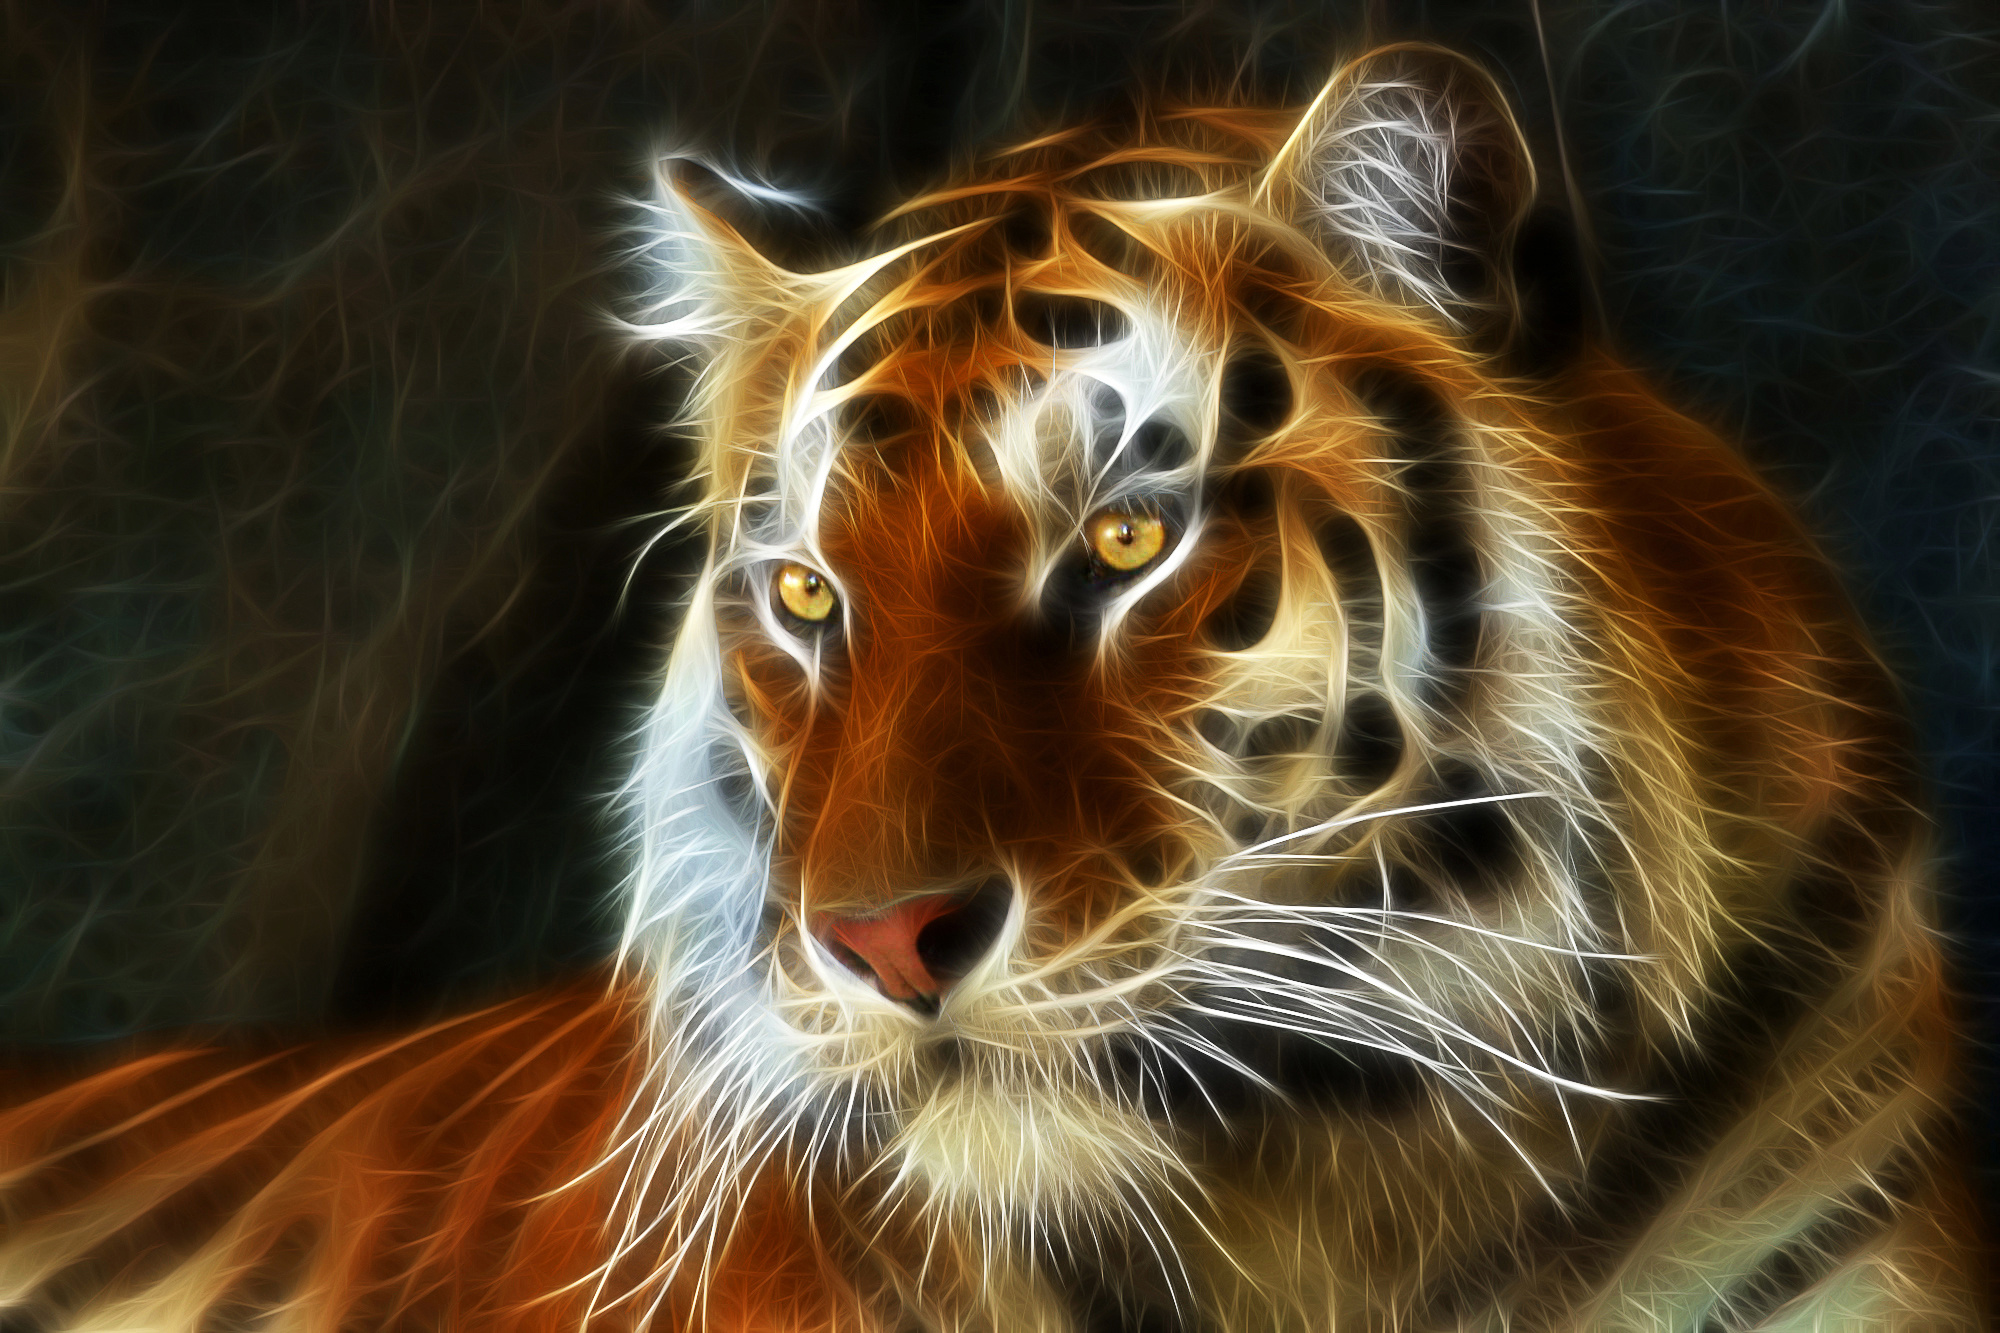 images of tiger animal wallpaper 3d - #spacehero